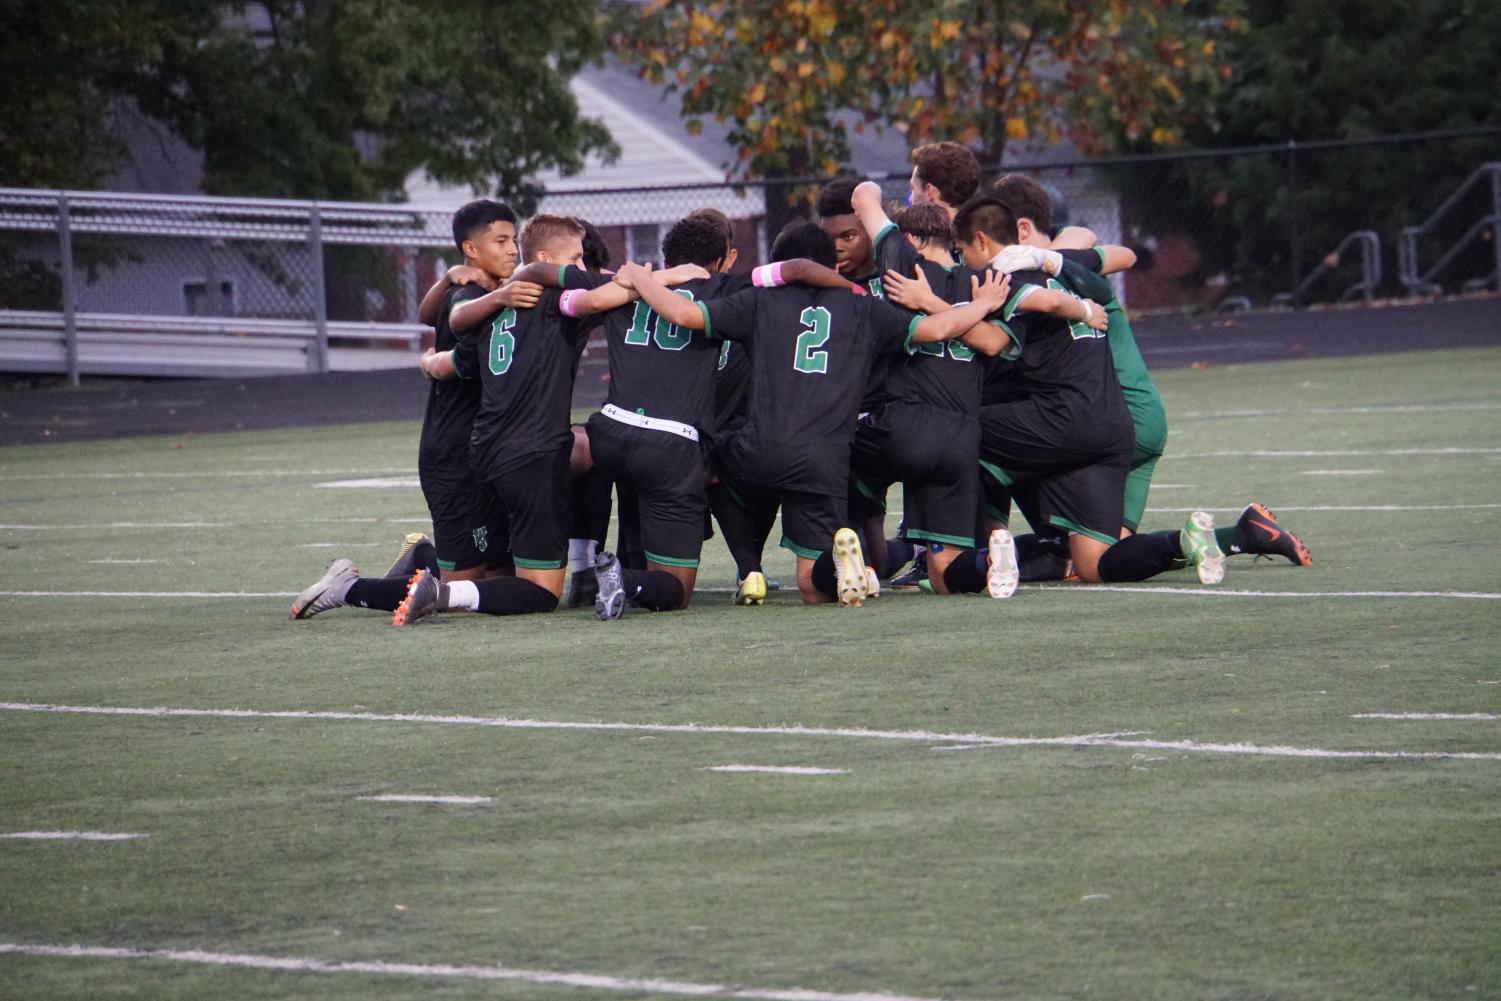 Boys varsity soccer huddles up pregame. They look to get to the old heights set by the 2016 state championship team.